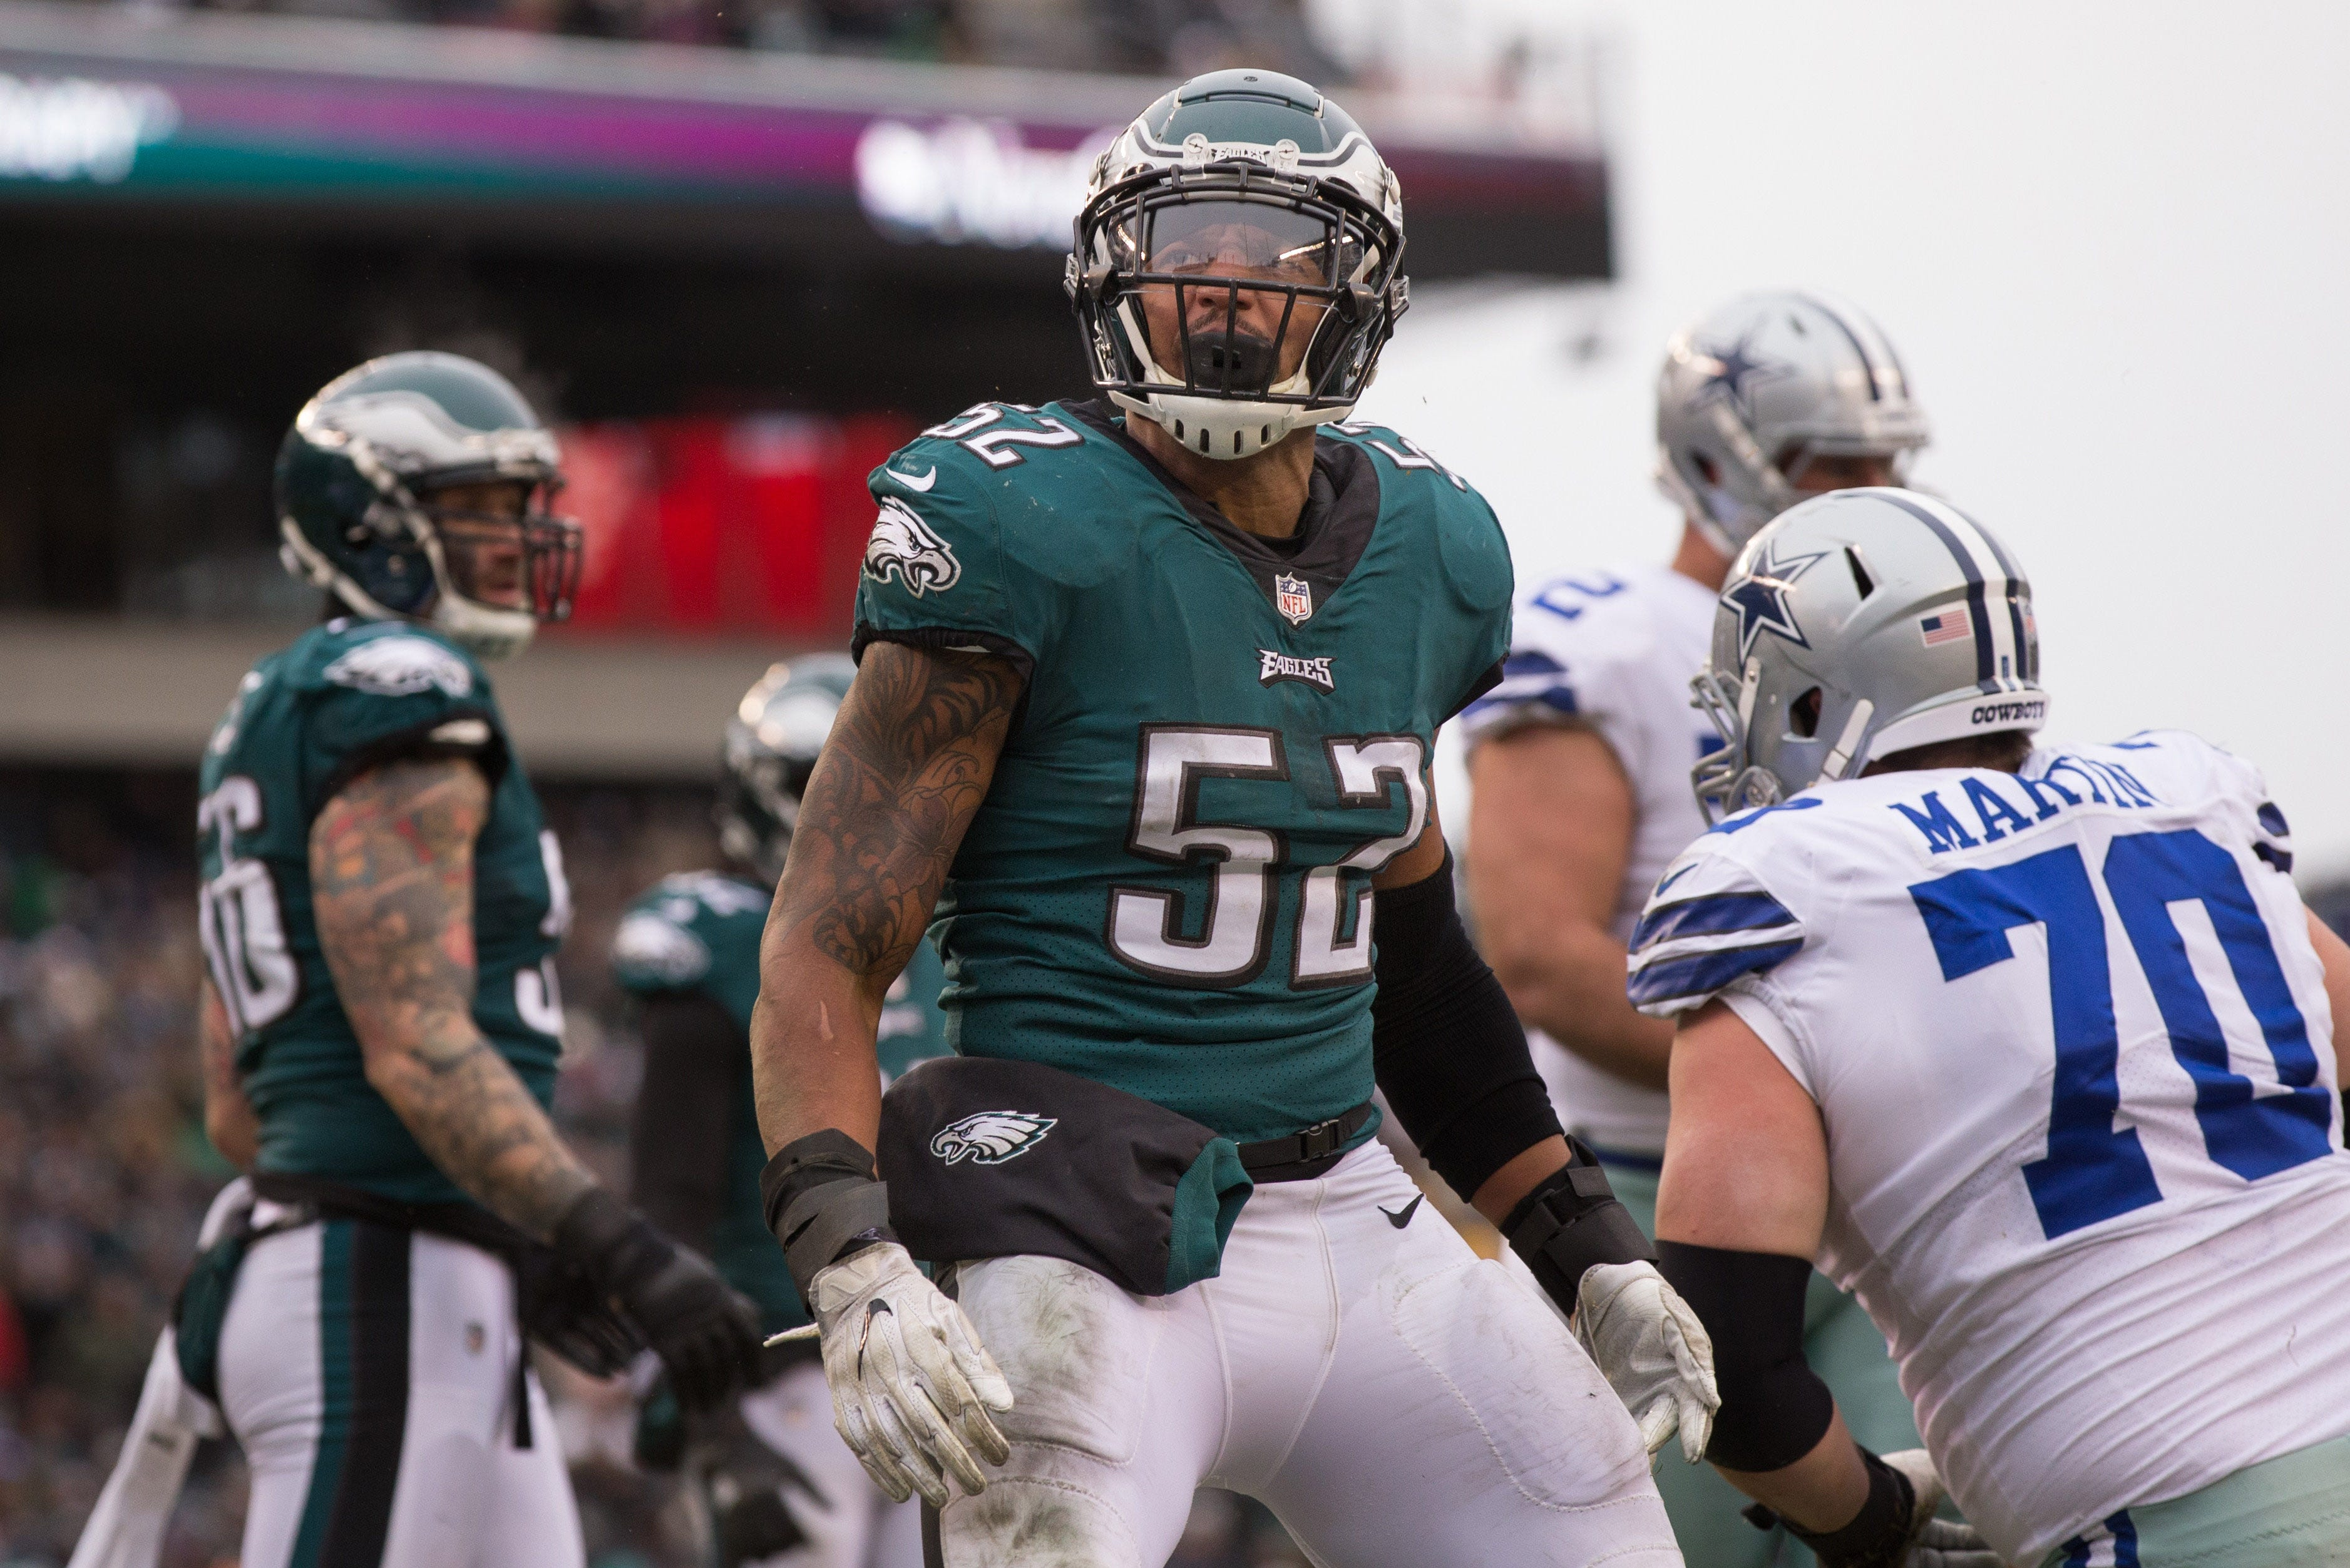 Former Eagles LB Najee Goode dishes on Colts coach Frank Reich